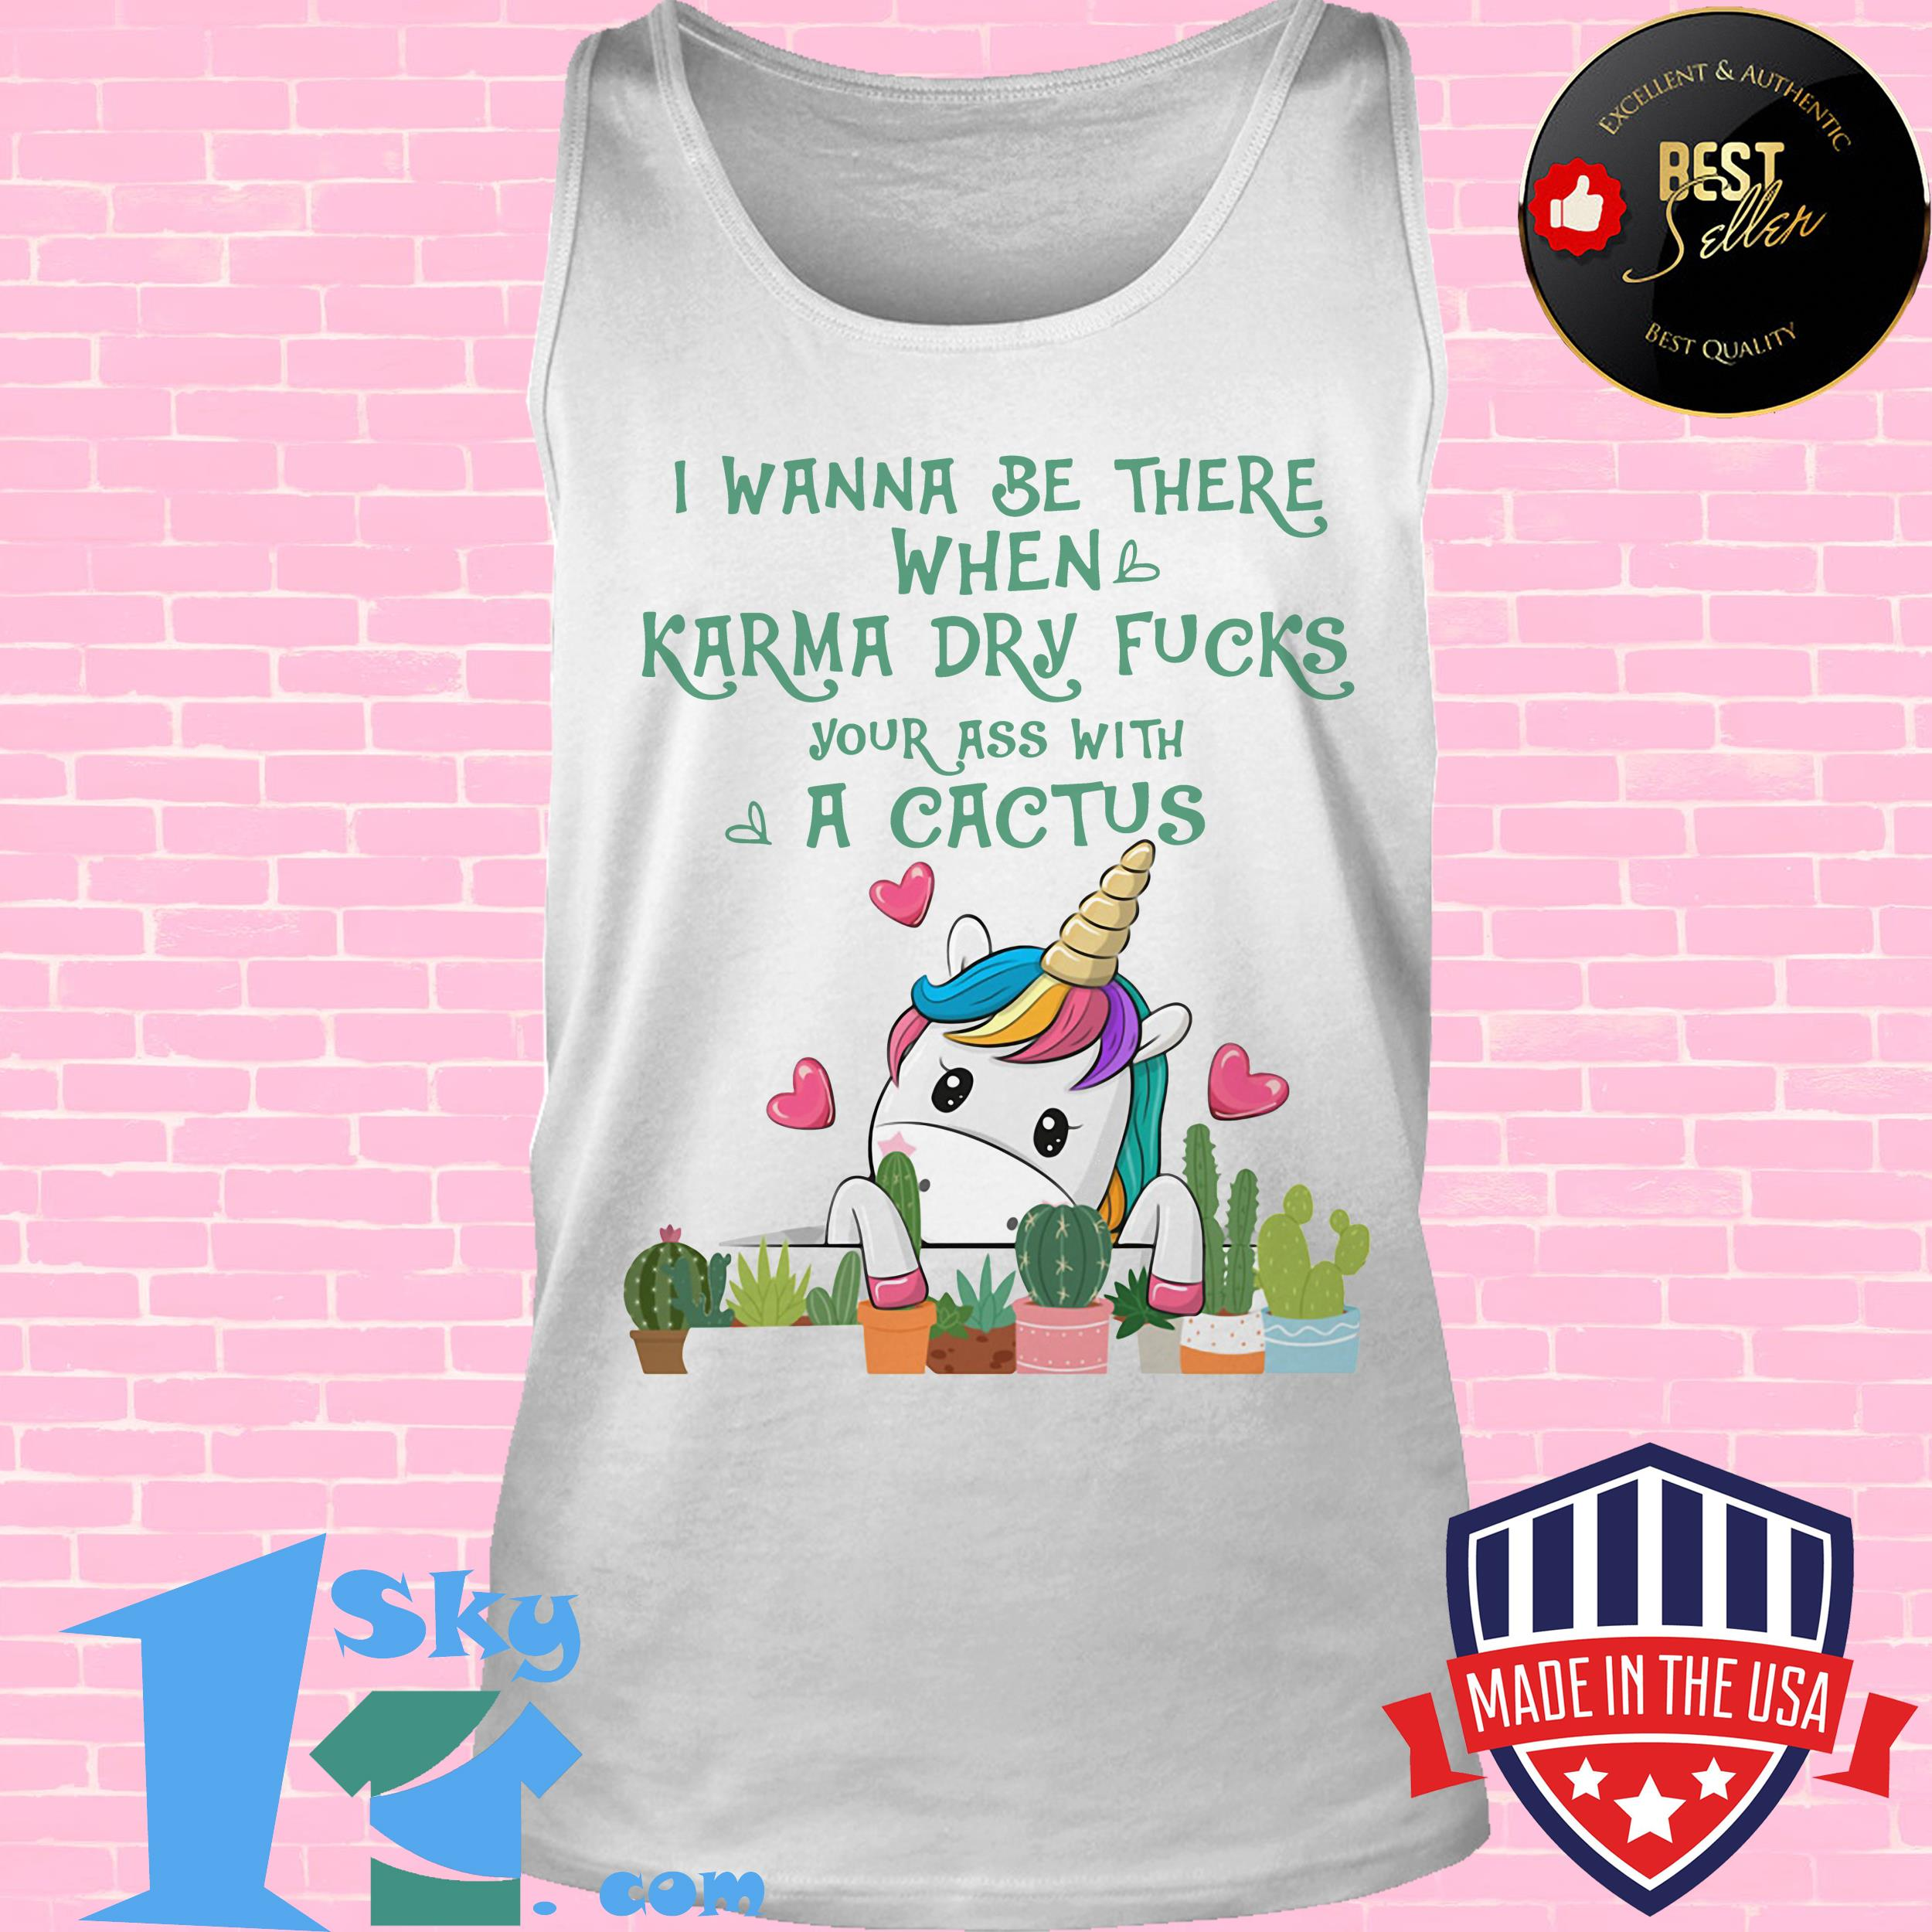 i wanna be there when karma dry fuck your ass with a cactus unicorn tank top - I Wanna Be There When Karma Dry Fuck Your Ass With A Cactus Unicorn shirt